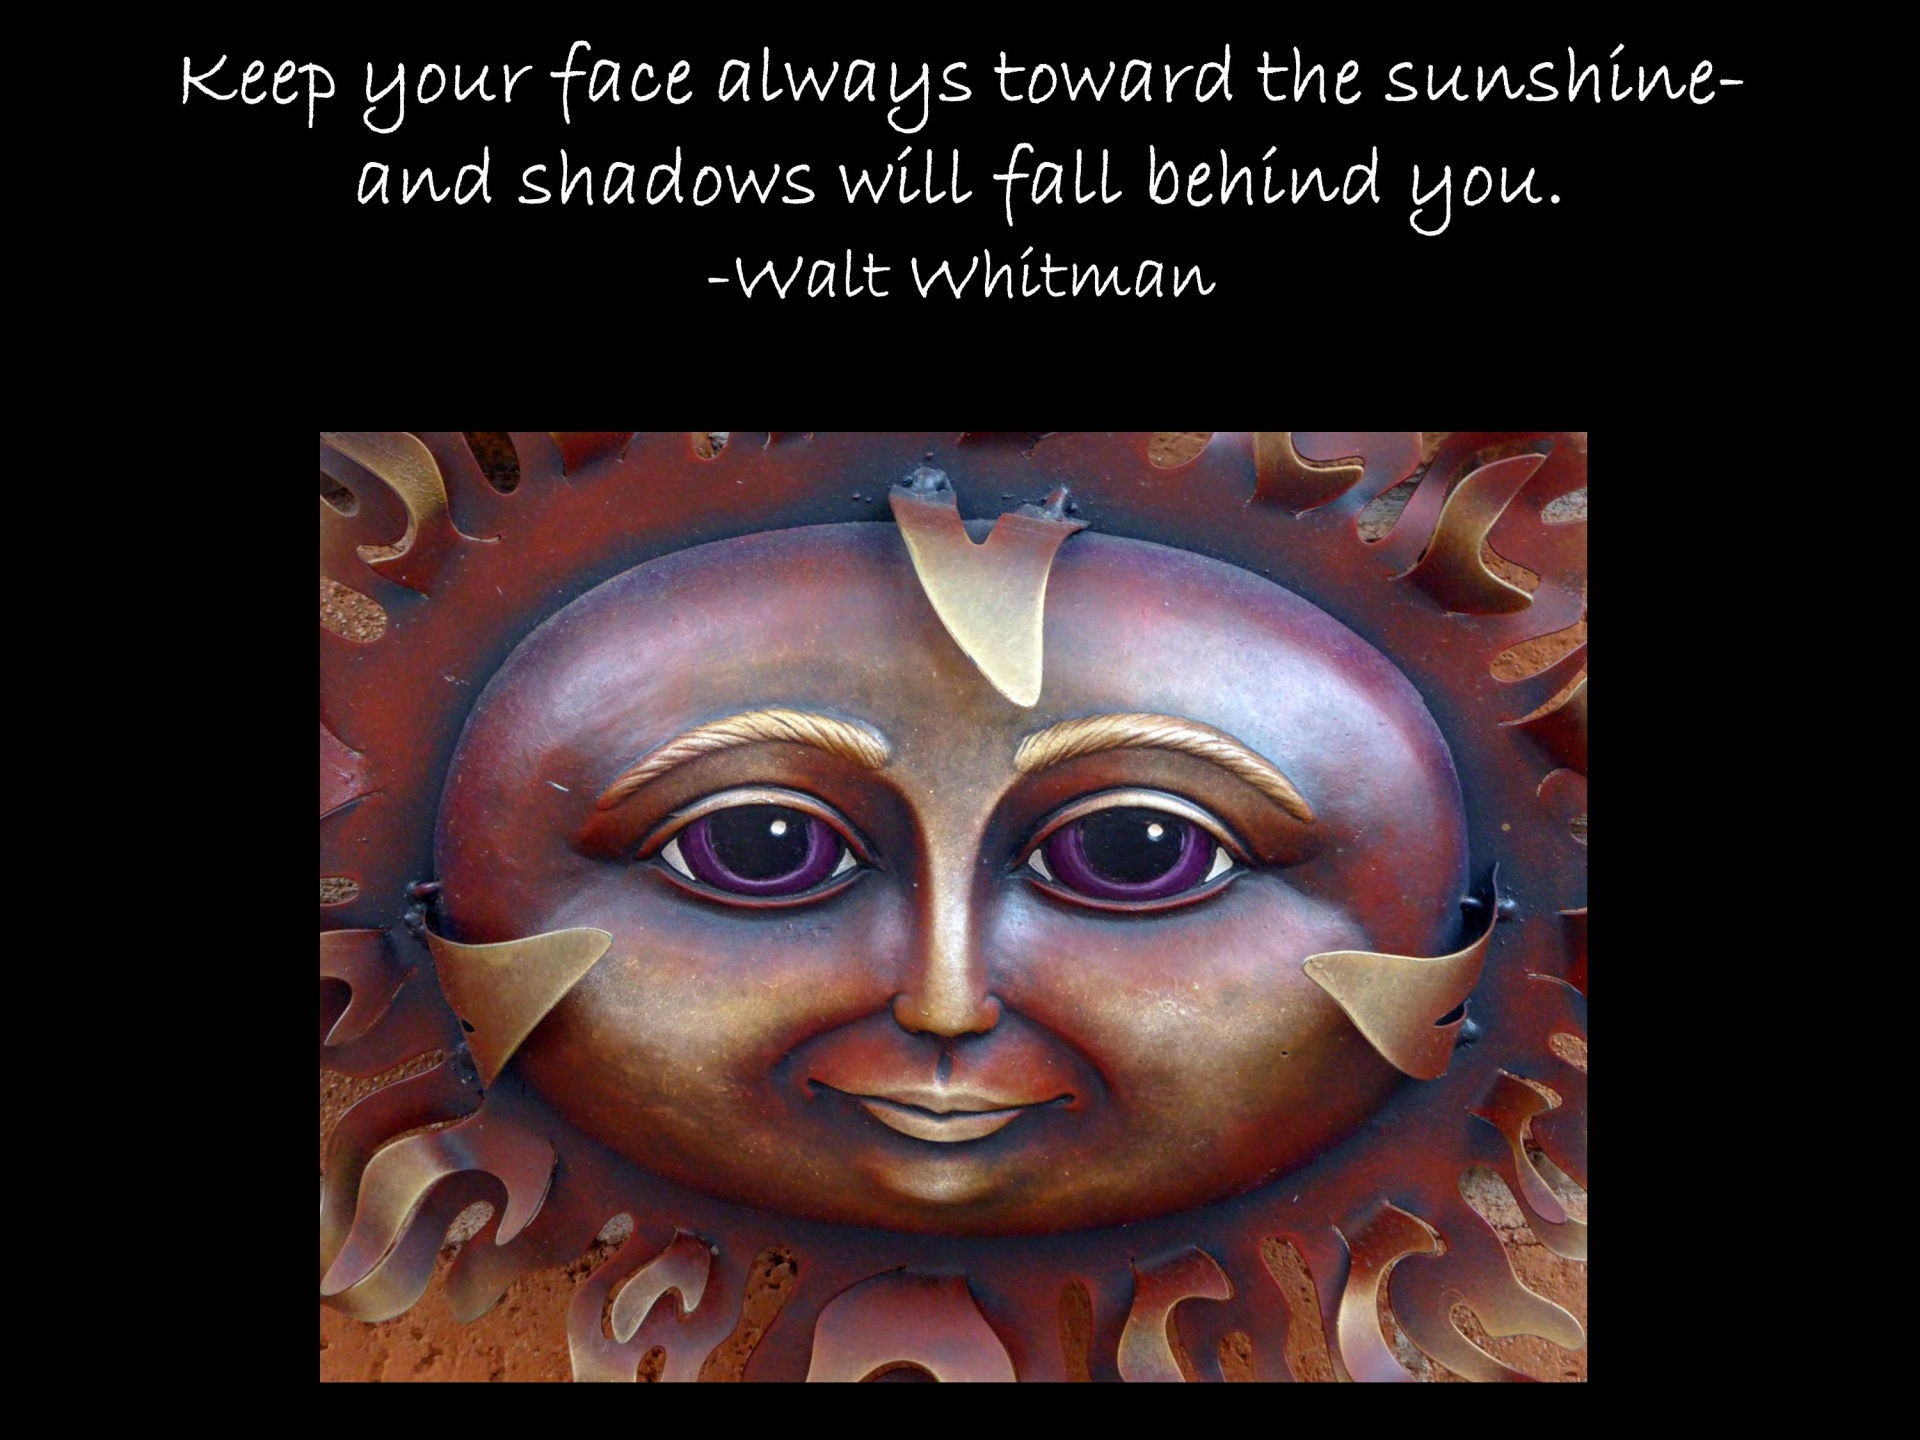 walt whitman, inspirational quotes, encouragement